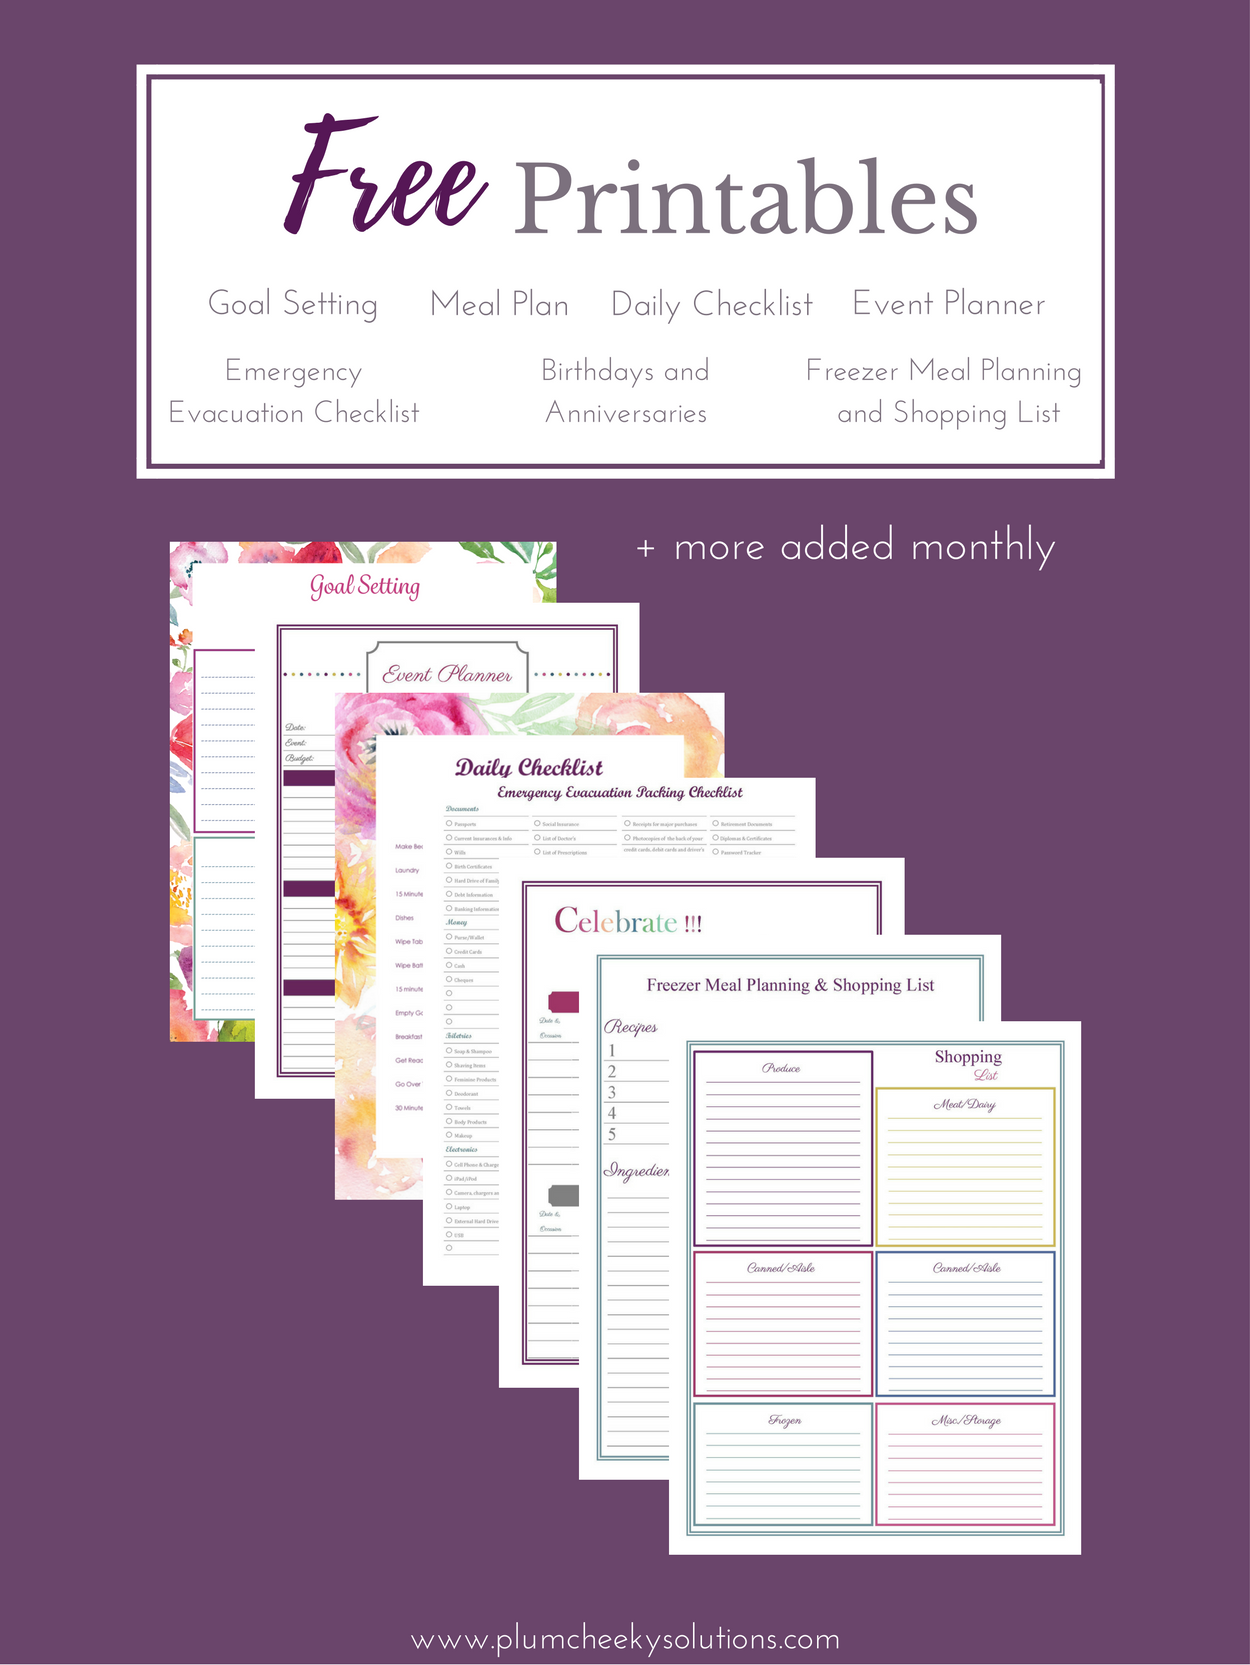 Free Printables Graphic Website.png